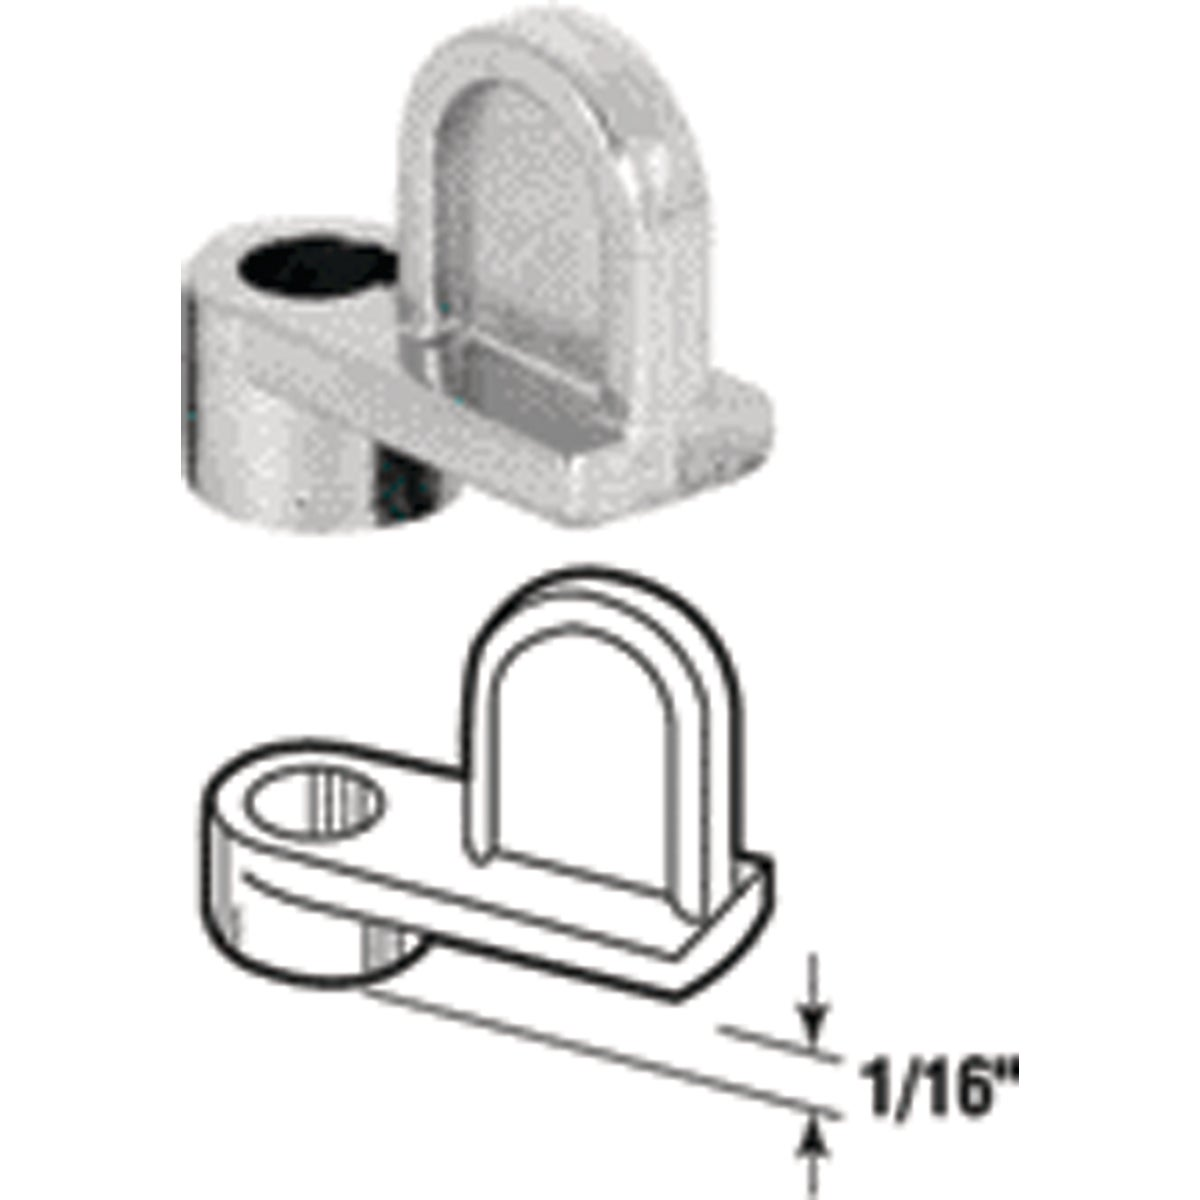 """1/16""""WINDOW SCREEN CLIPS - 18107-1 by Prime Line Products"""